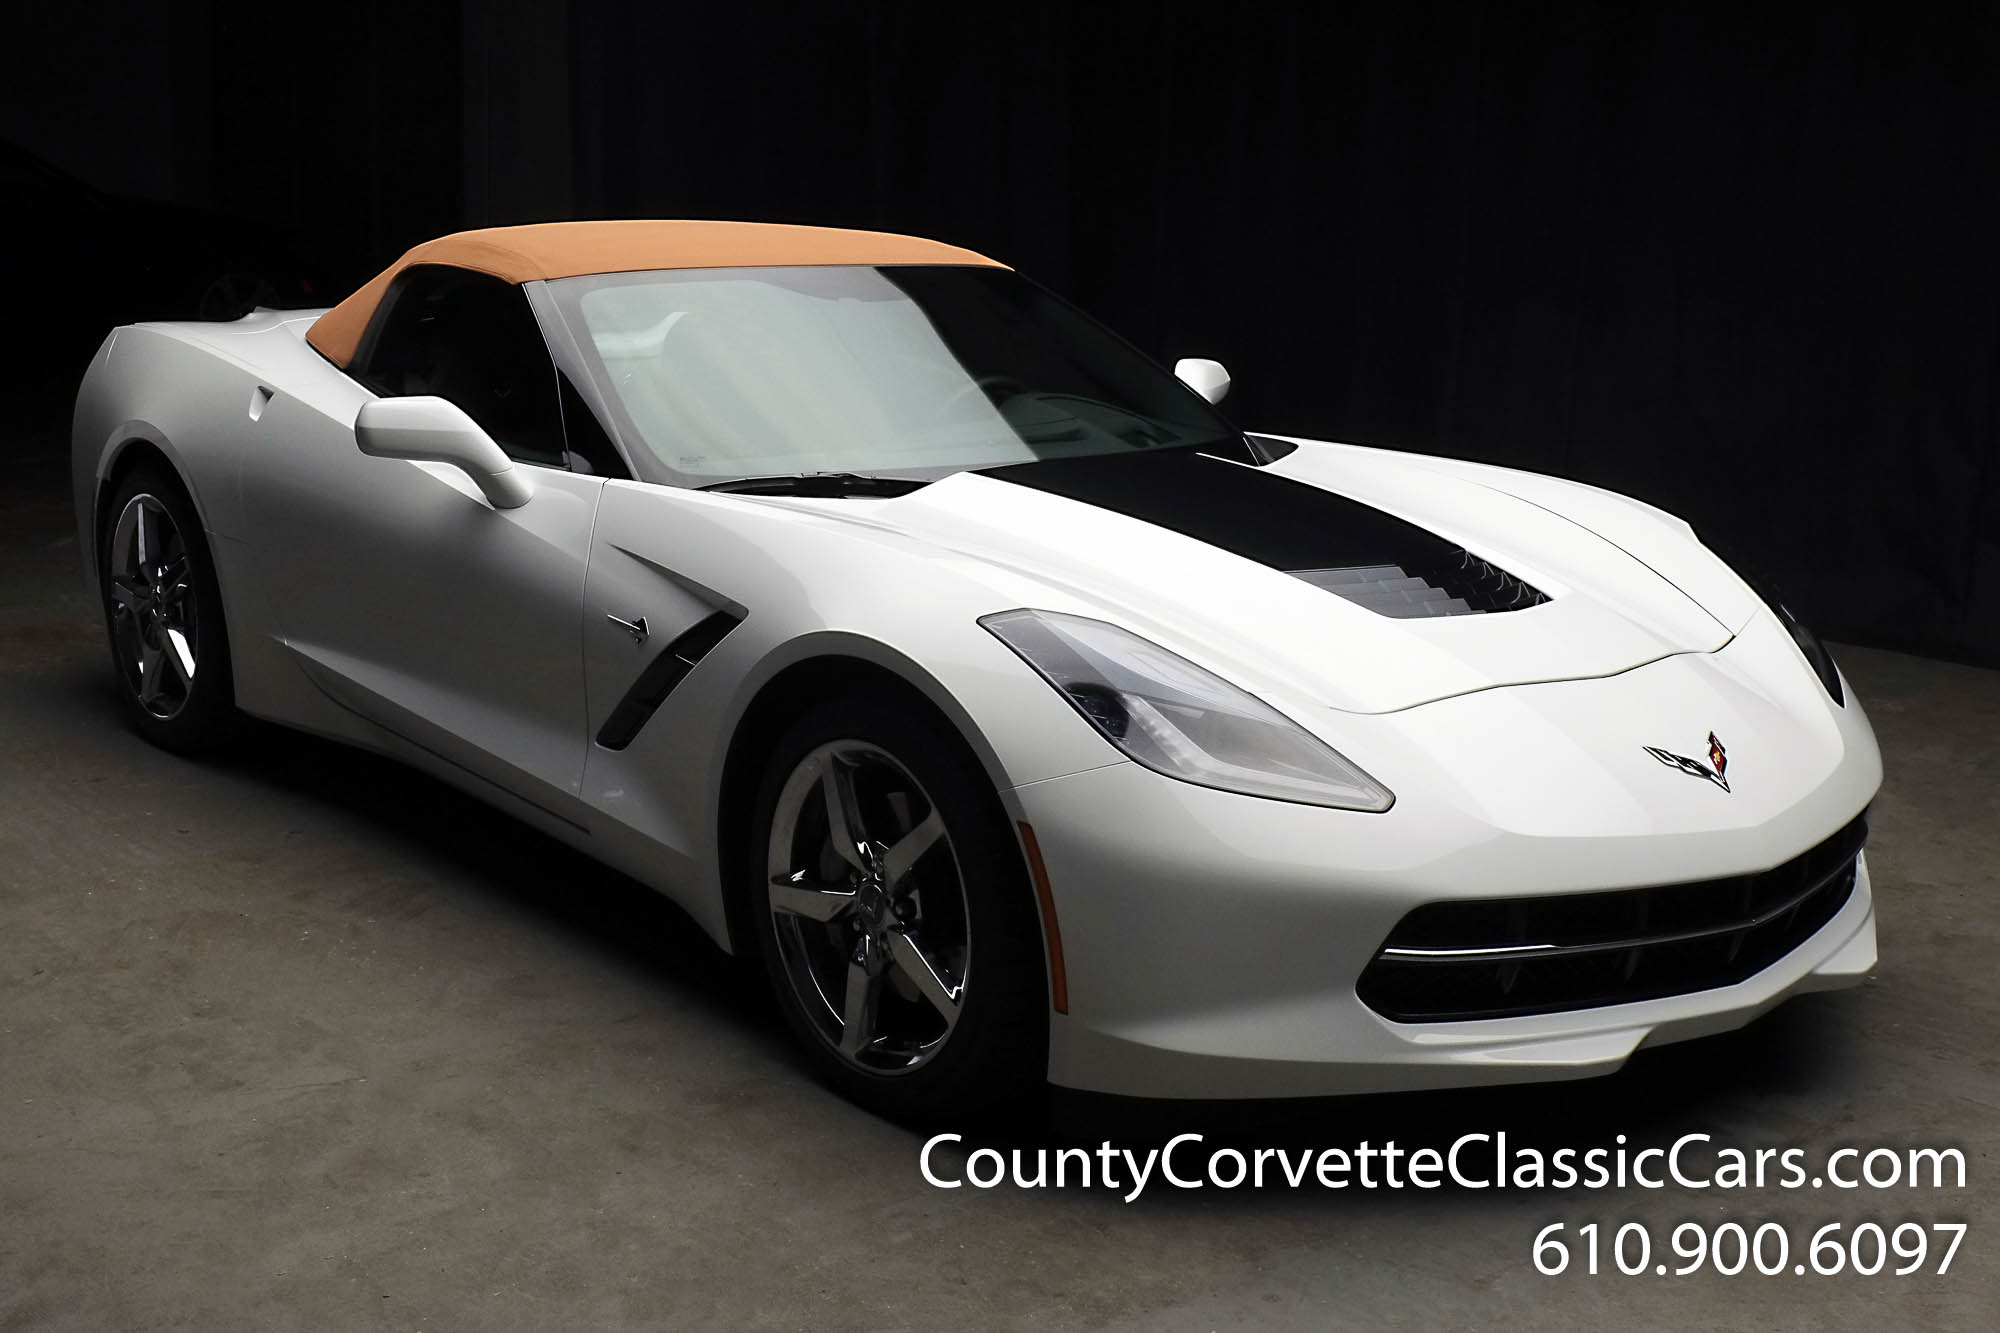 2014-Corvette-Stingray-Convertible-24.jpg